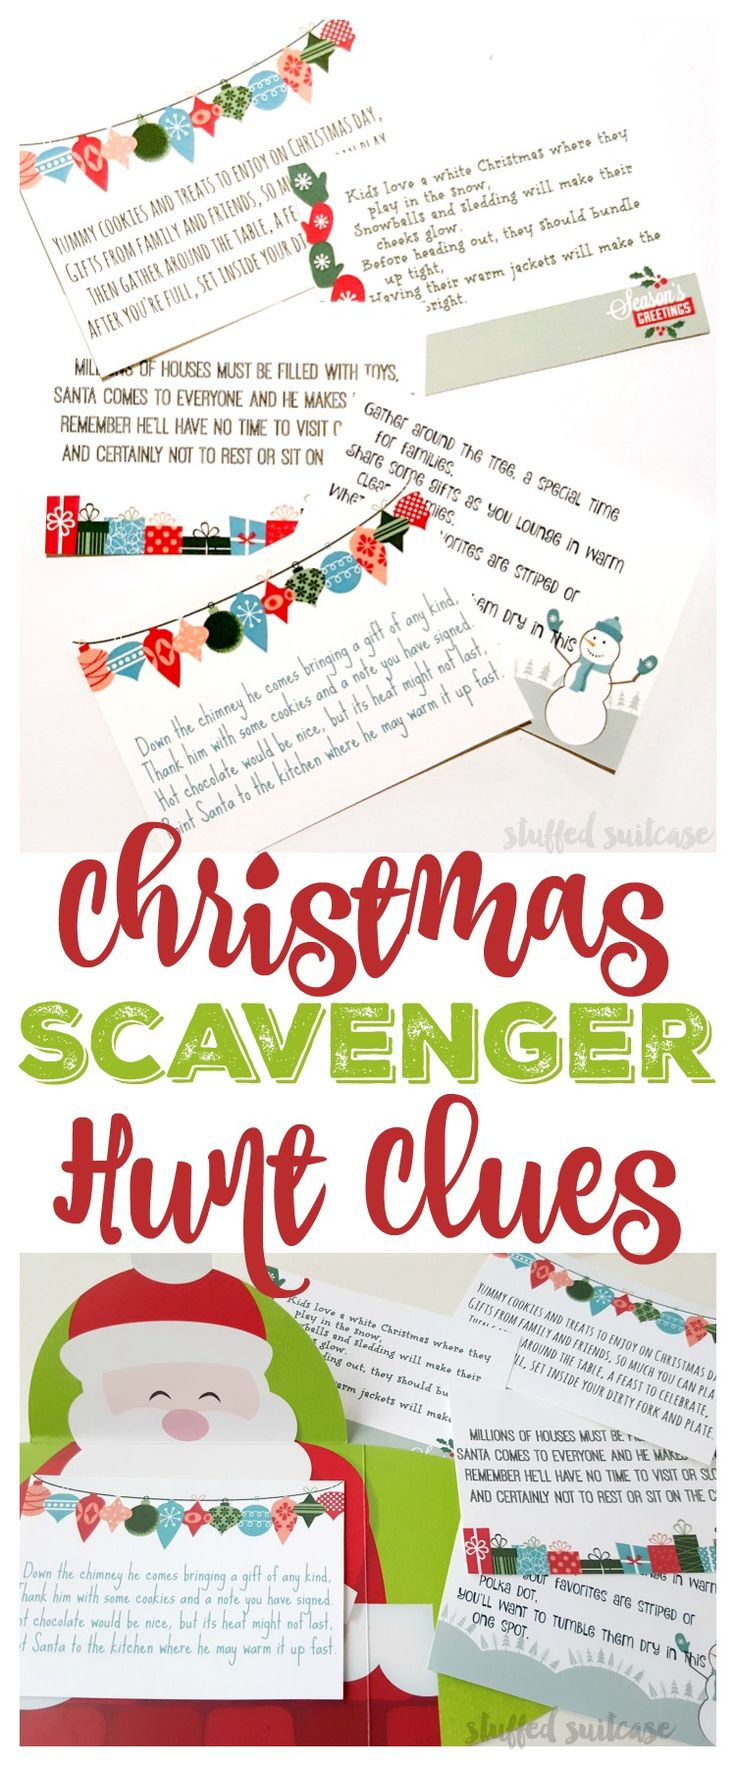 Uncategorized Funny Christmas Riddles best 25 christmas riddles ideas on pinterest trivia scavenger hunt and clues